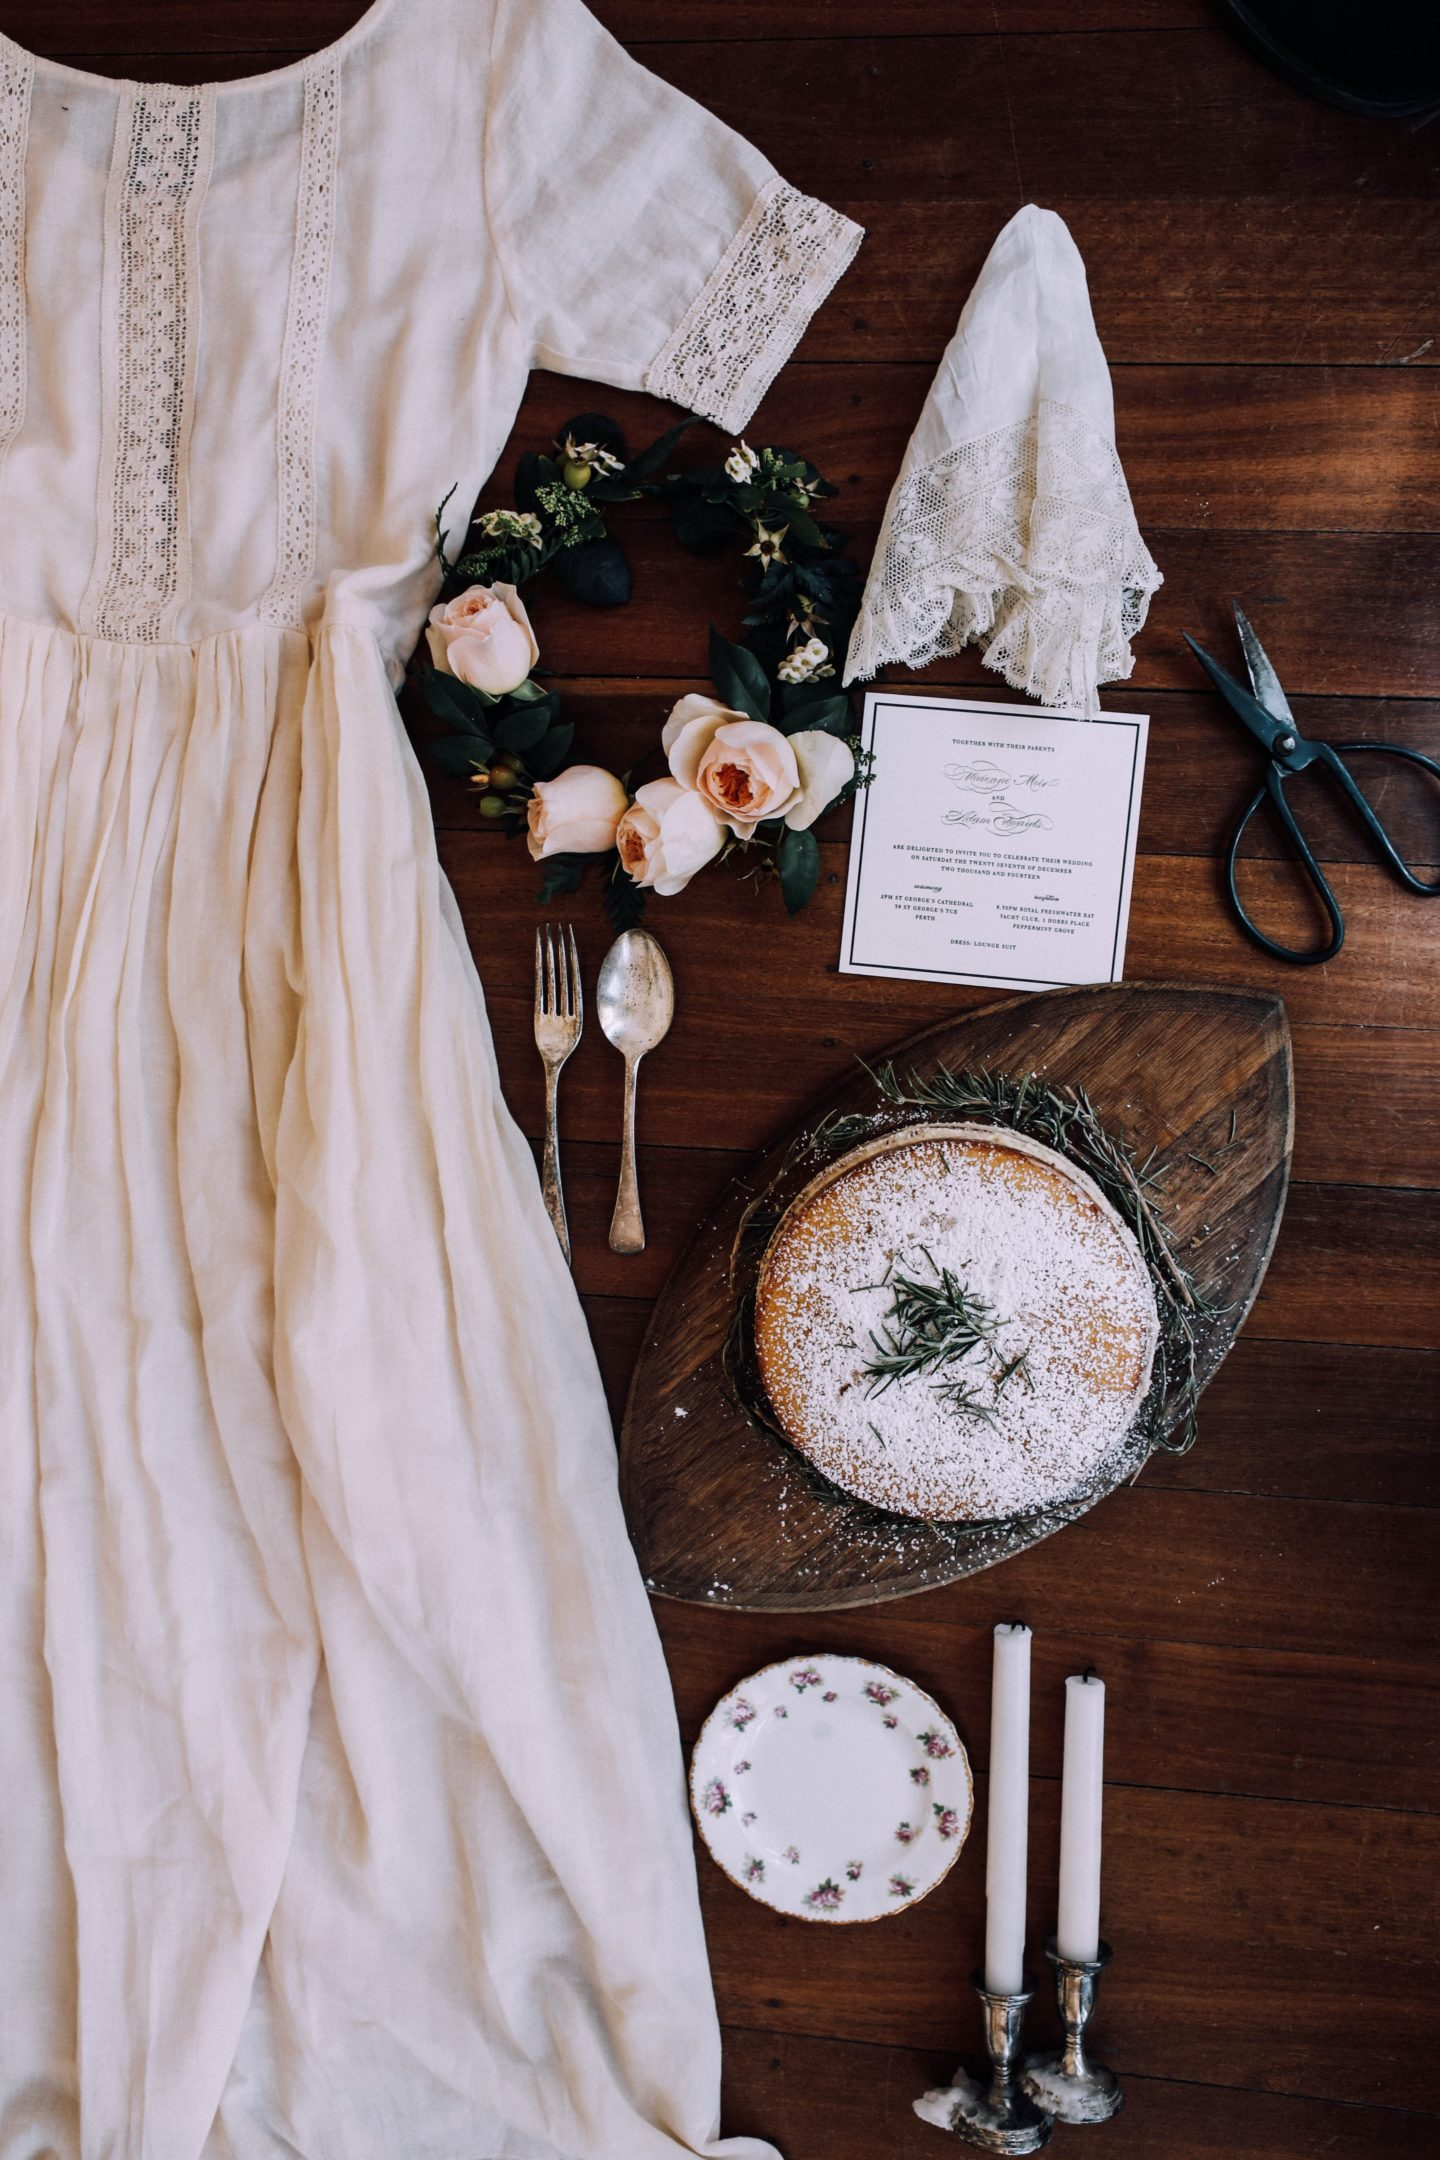 5 Places To Buy Pre-Loved and Vintage Wedding Dresses